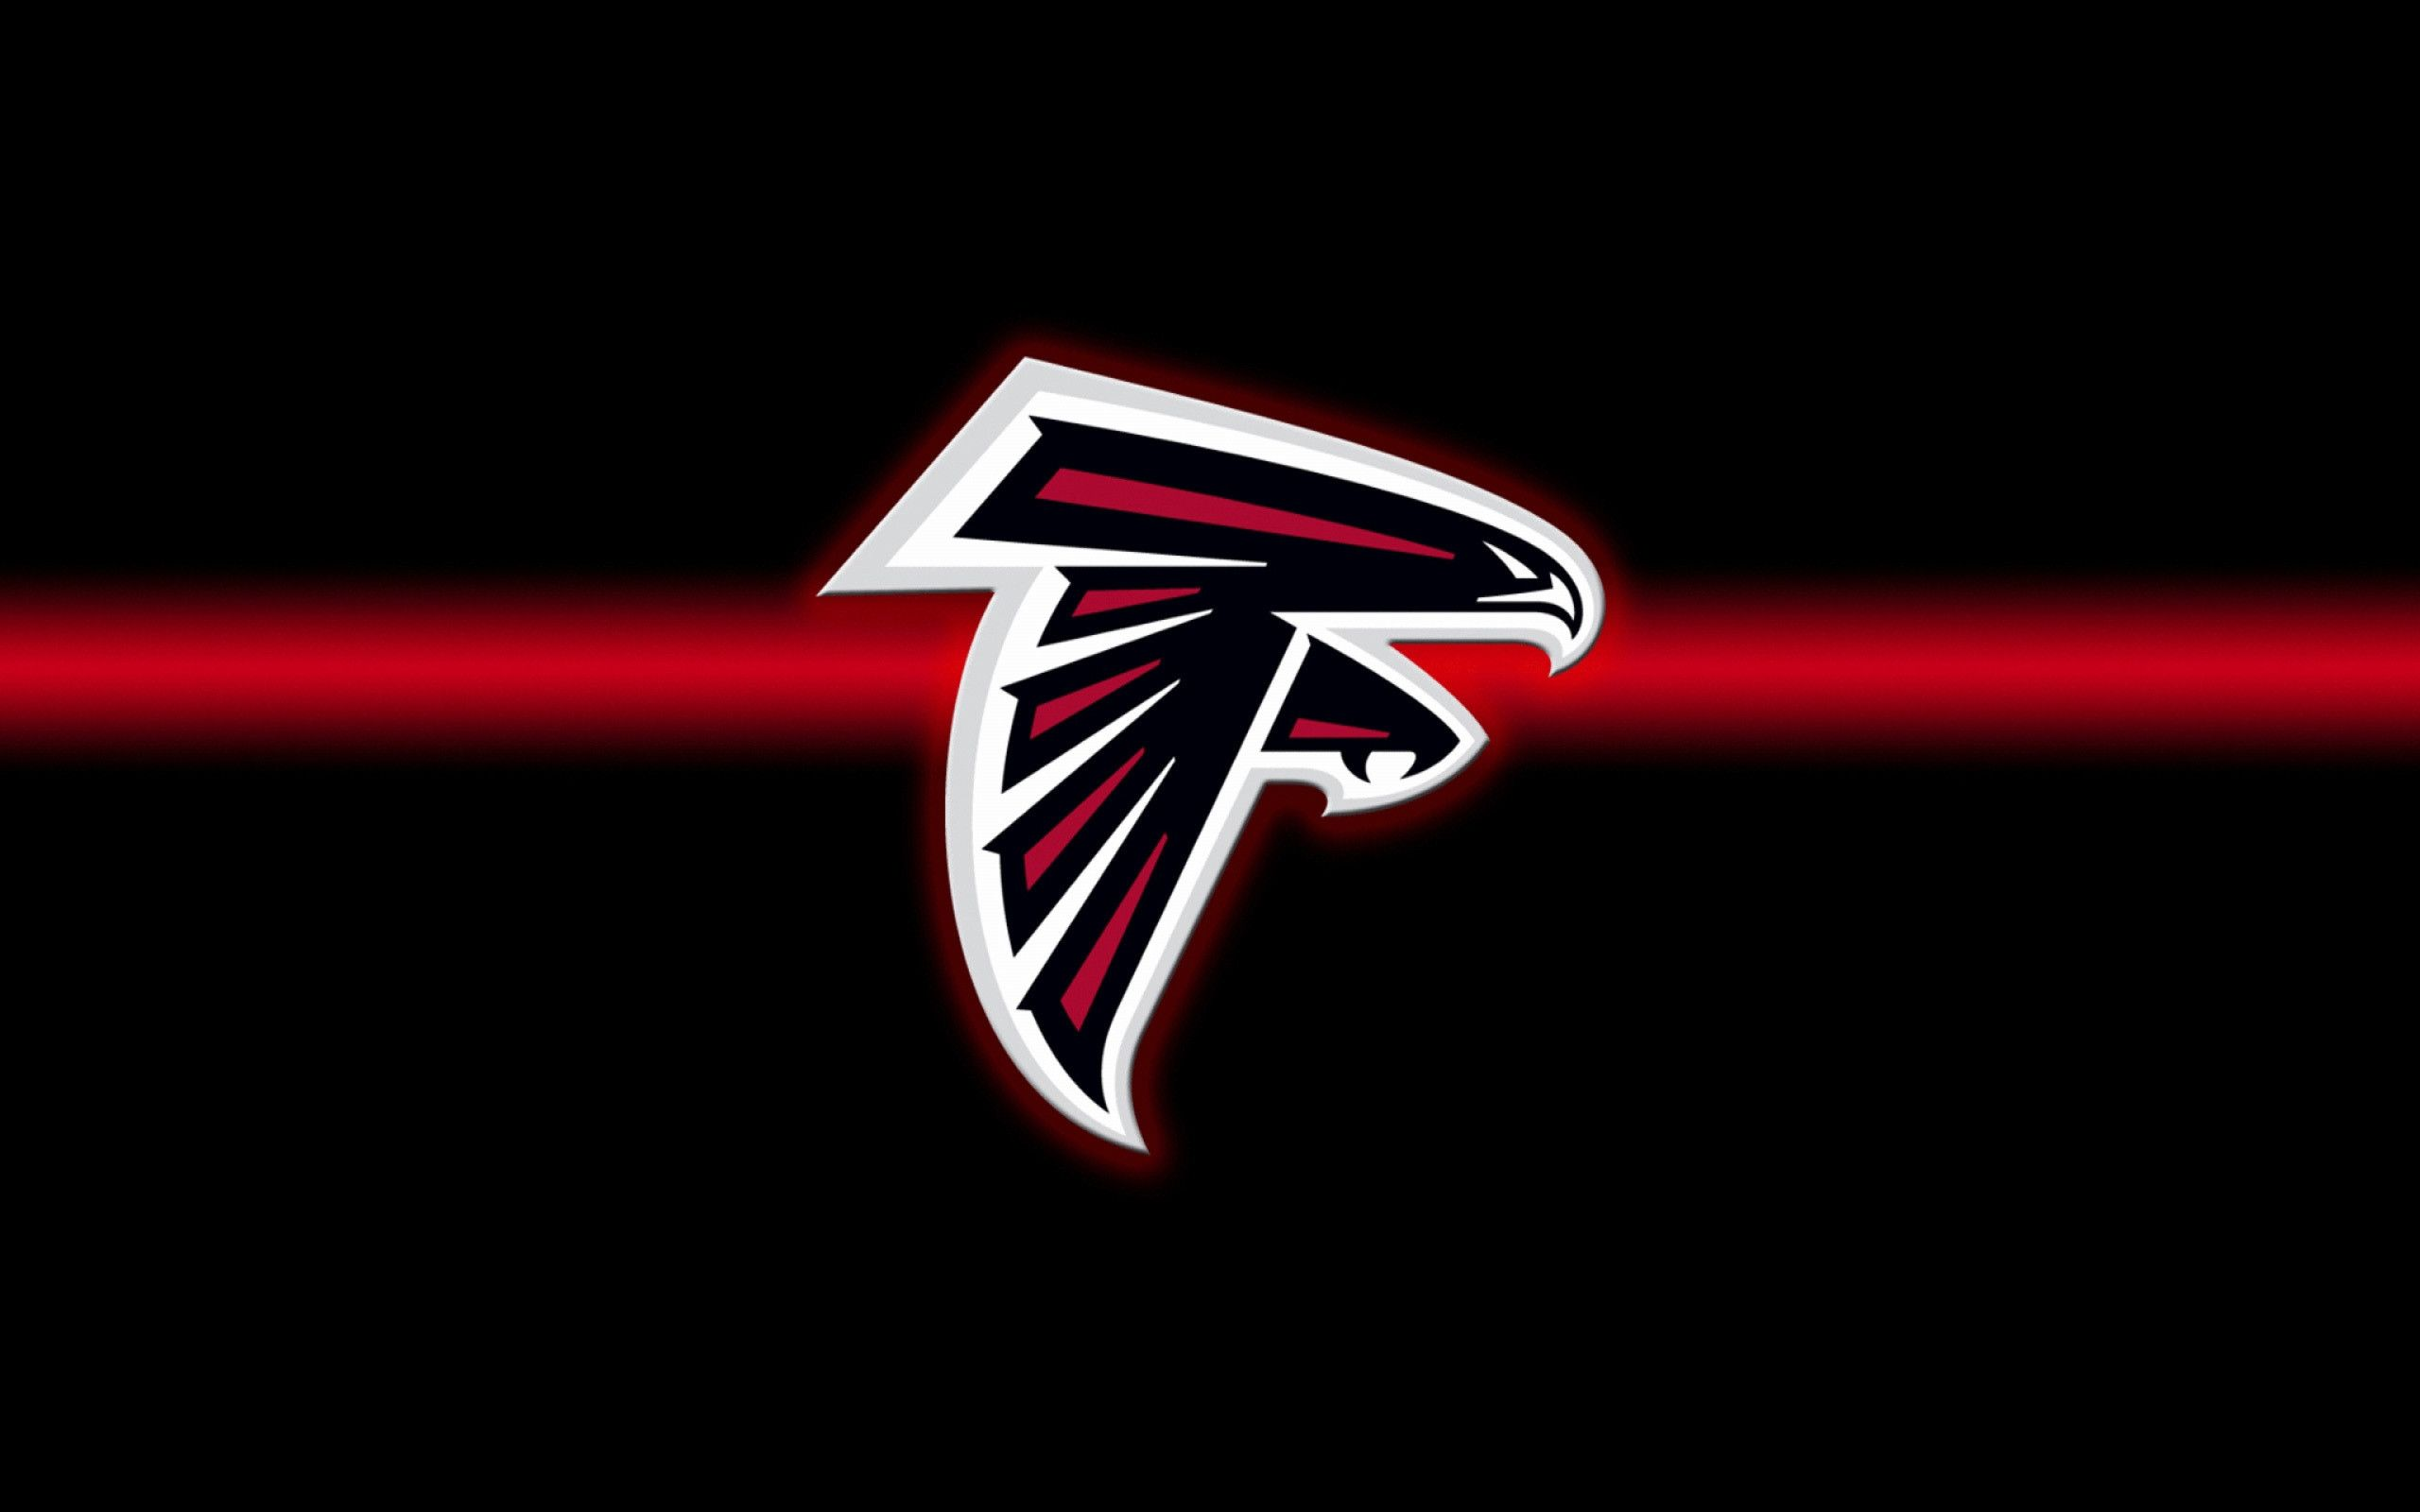 Falcons Wallpaper: Atlanta Desktop Wallpaper